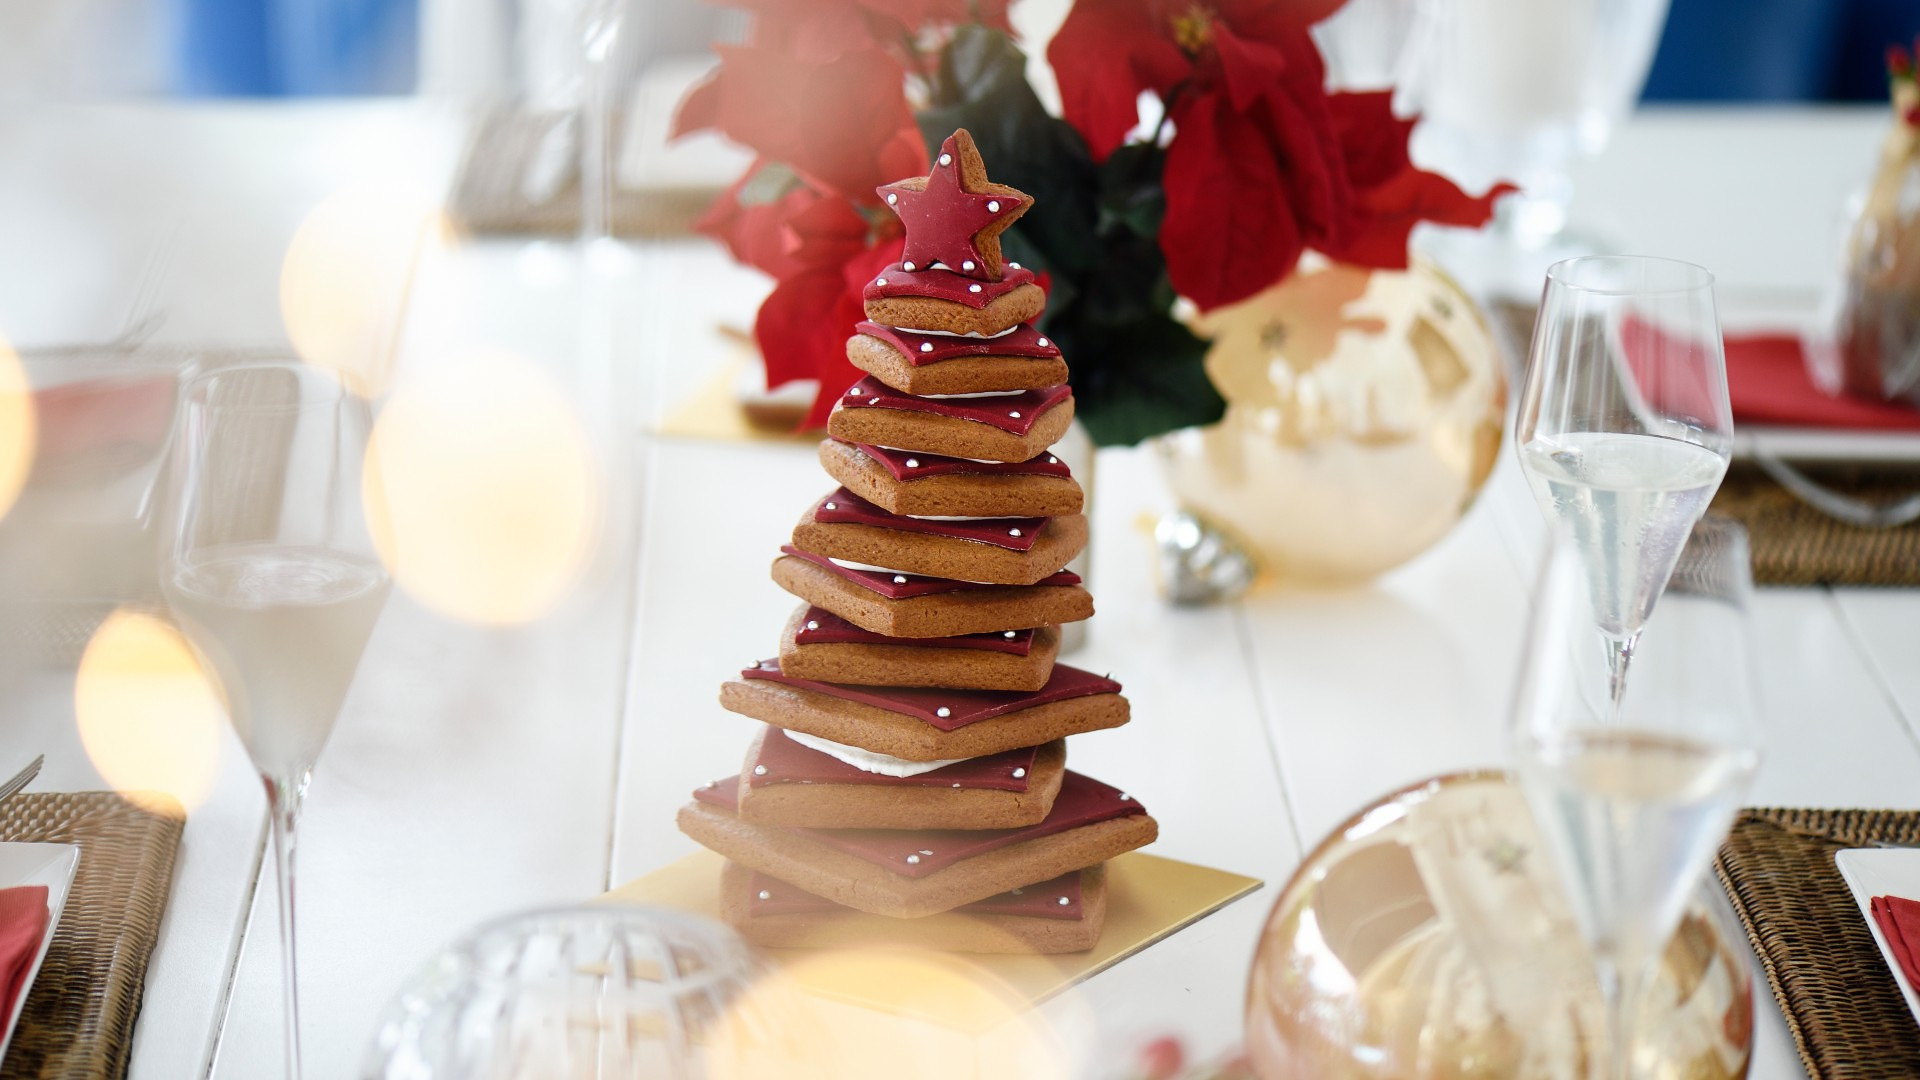 Whimsical Treats & Desserts For A Sprinkle Of Magic This Christmas